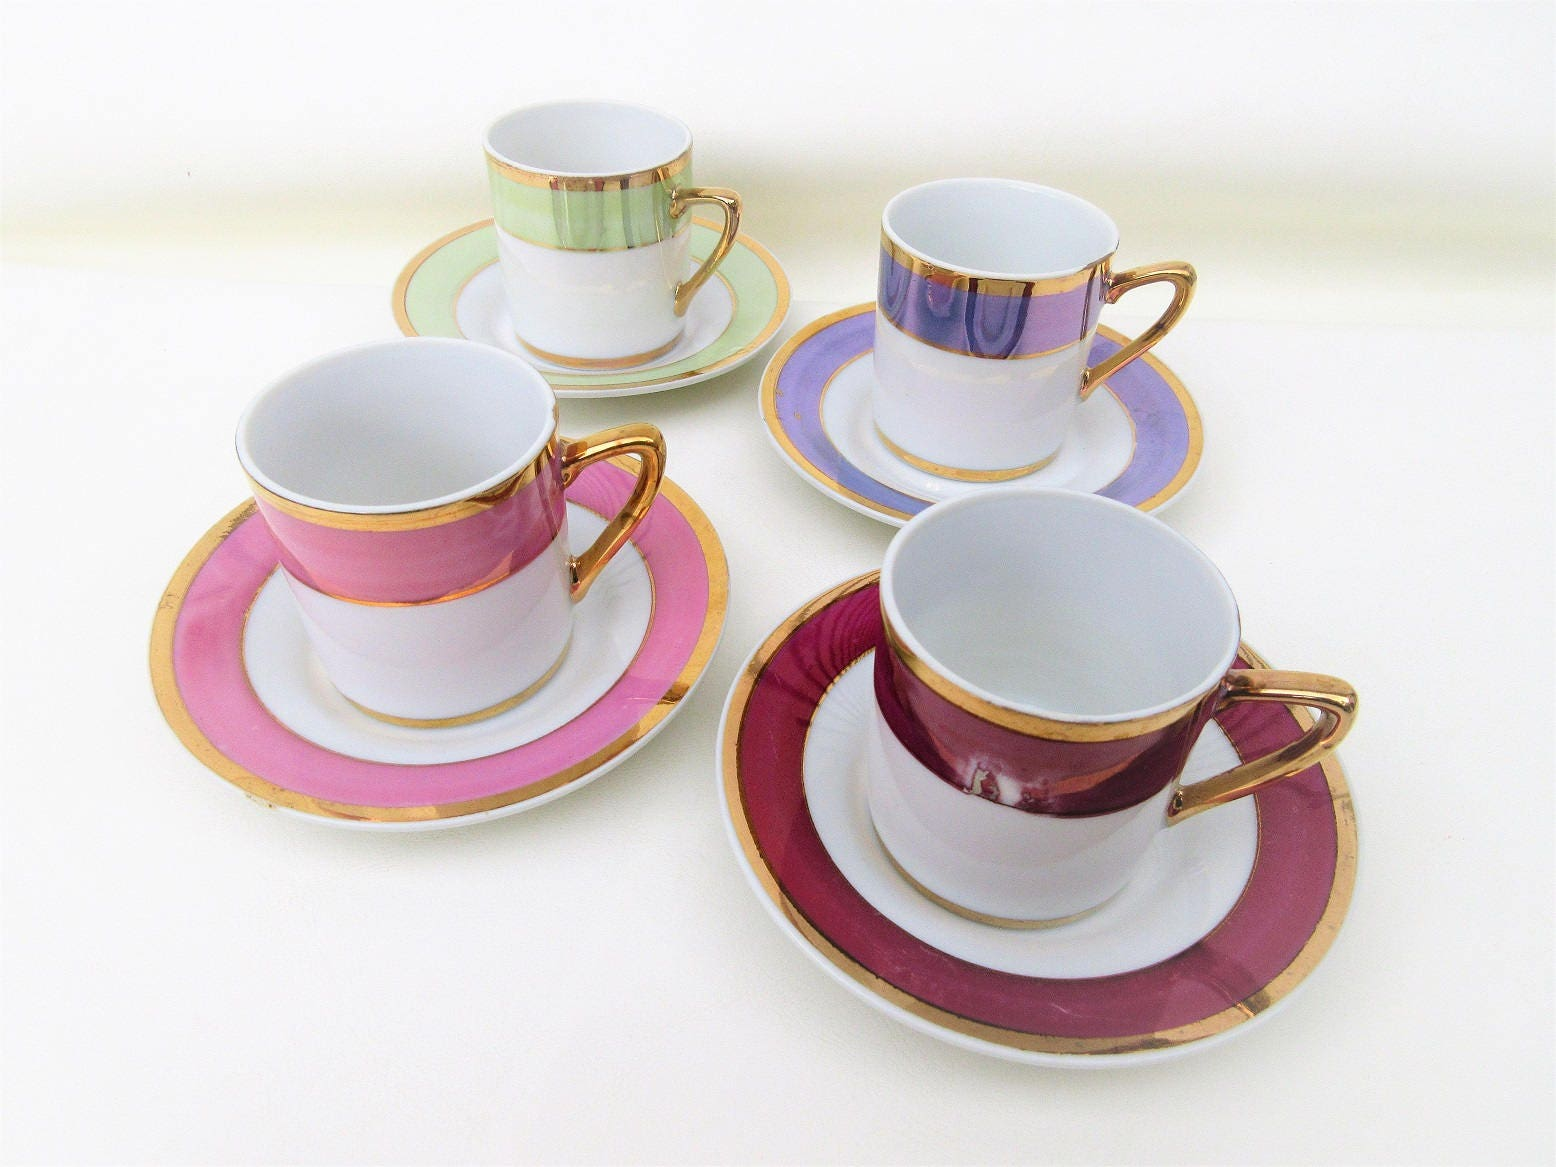 Vintage Espresso Cup Sets Demitasse Cups Saucers Small